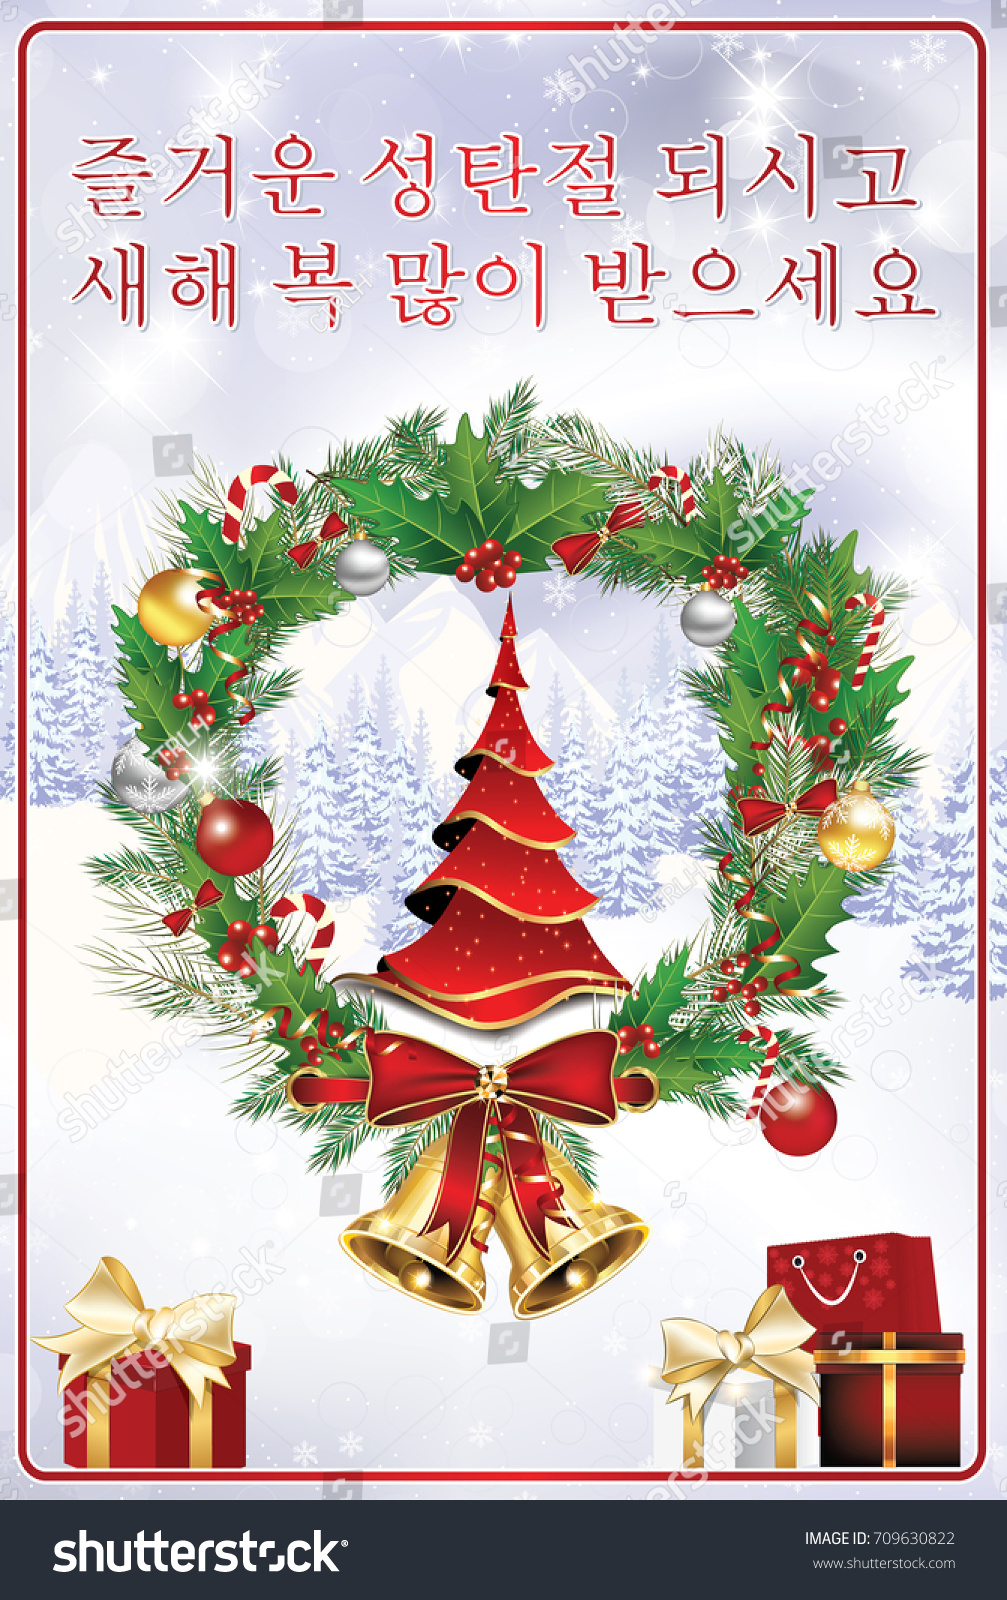 Christmas new year greeting card korean stock illustration christmas new year greeting card korean text translation merry christmas happy new year kristyandbryce Image collections